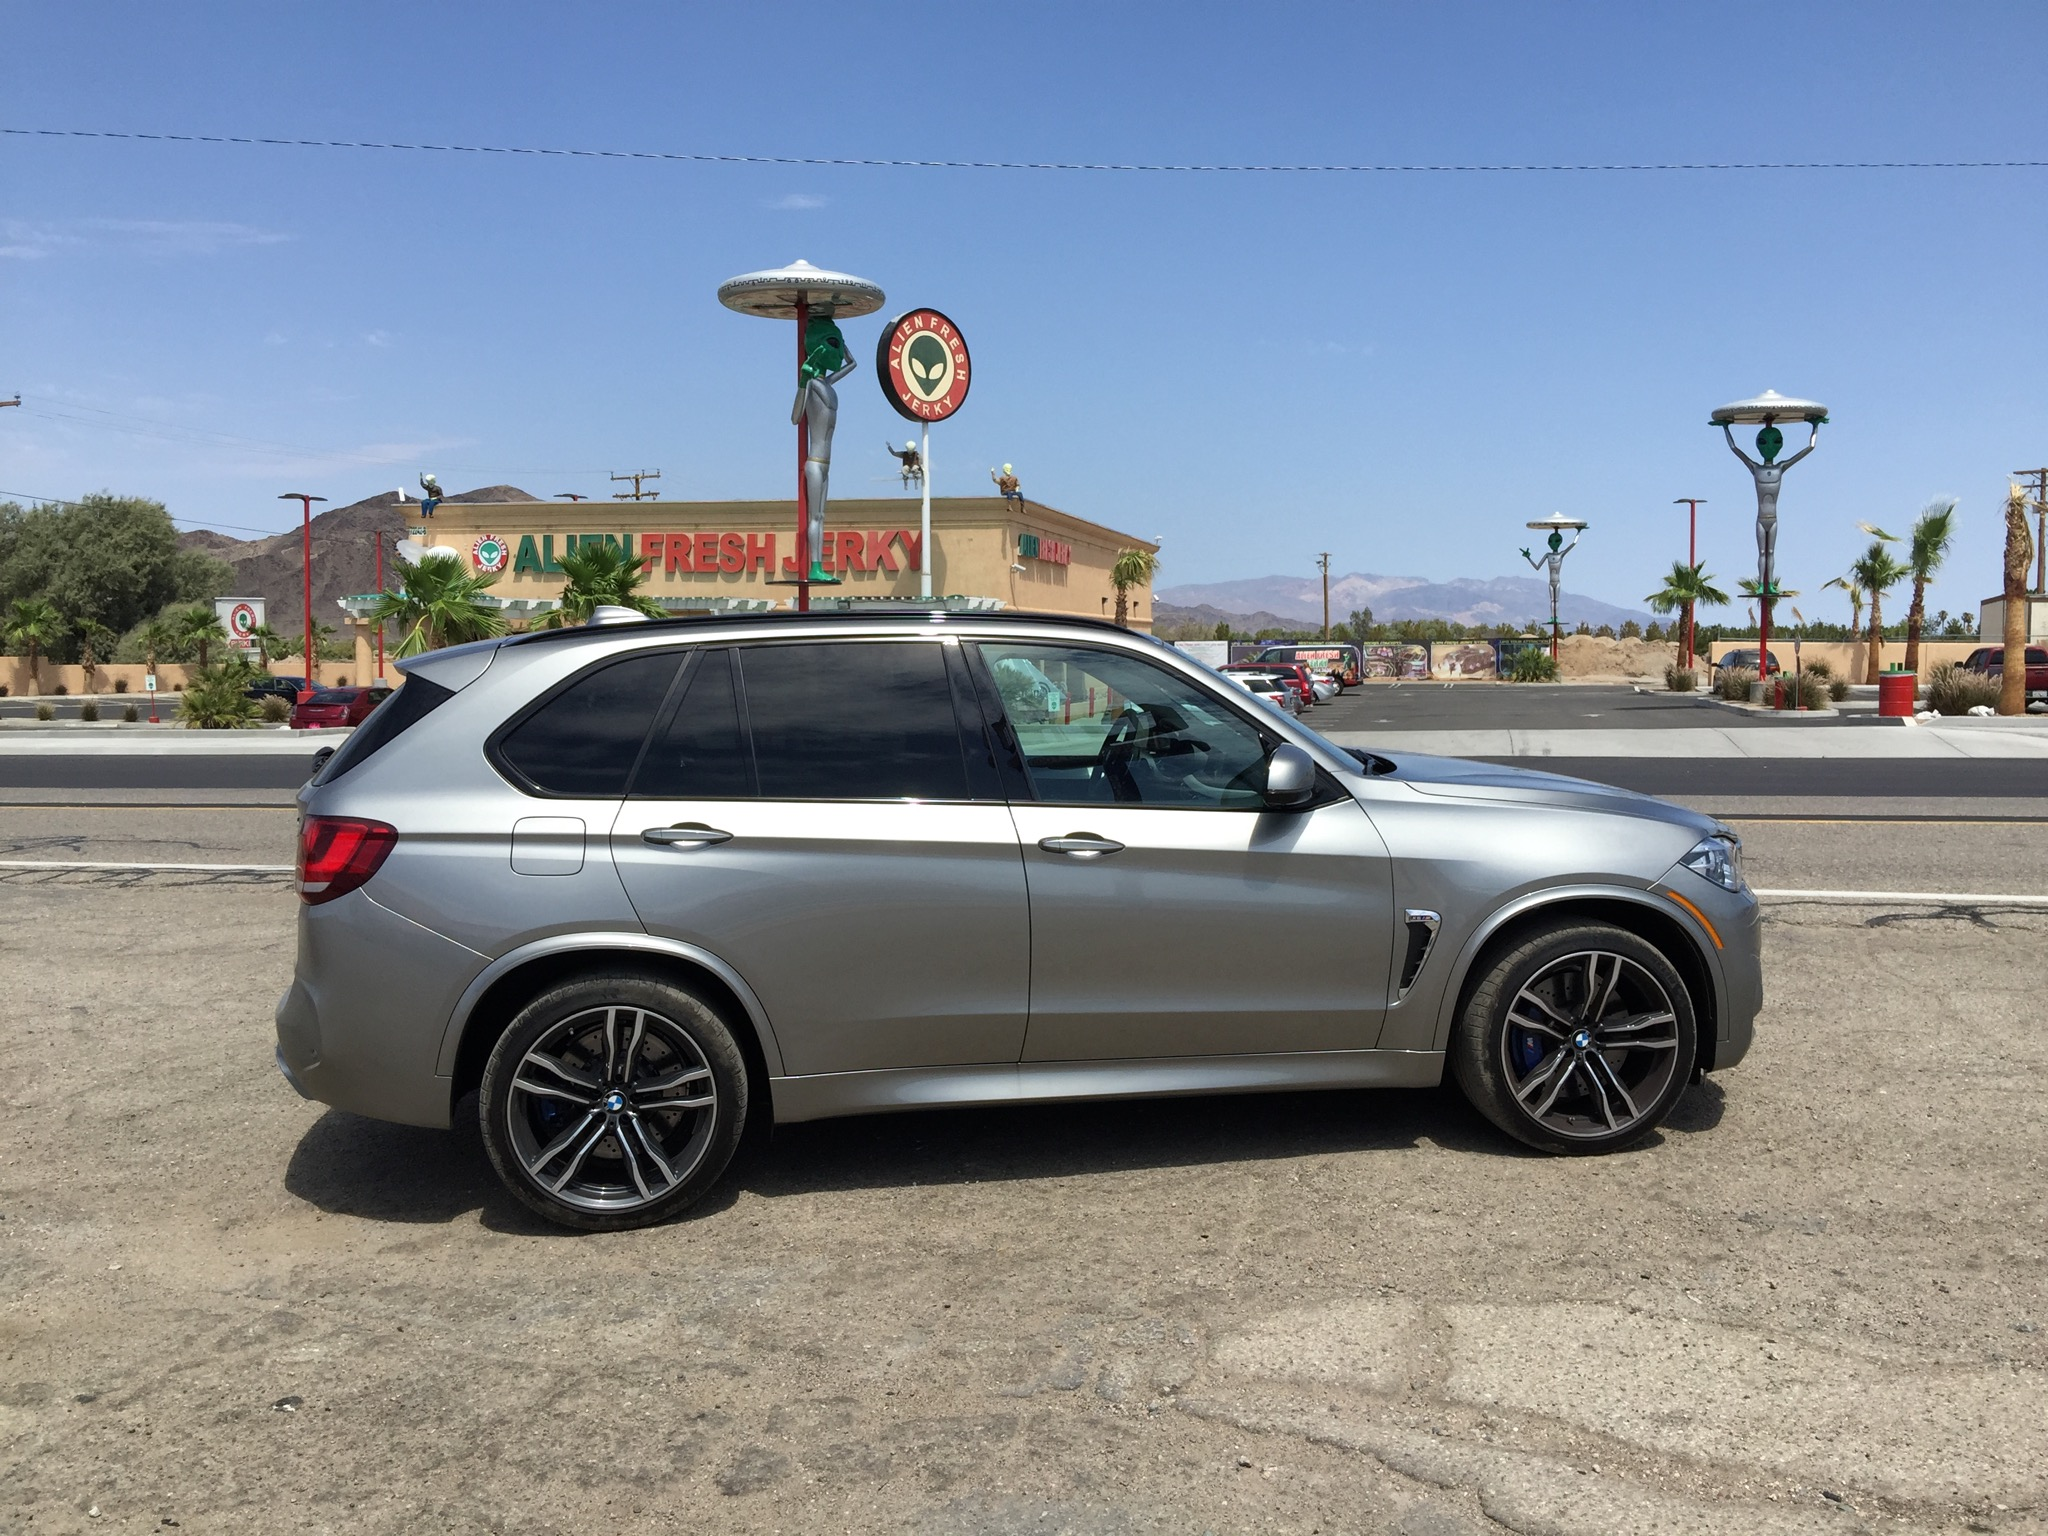 2019 Bmw X5 M Car Photos Catalog 2018